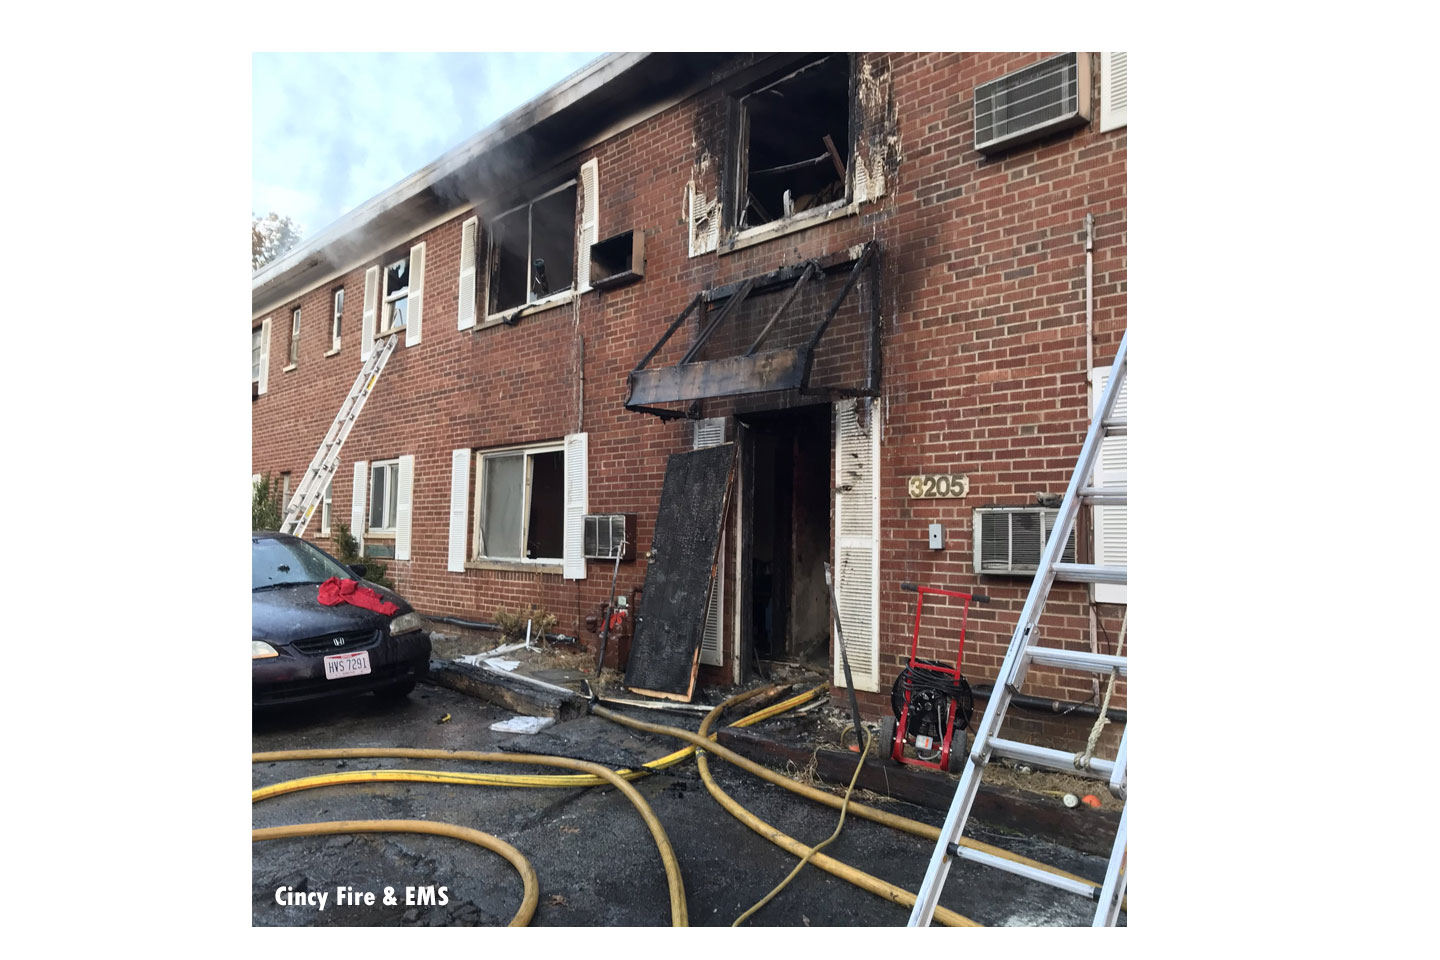 Photo shows laddering and line placement at the fire as well as damage to the building.